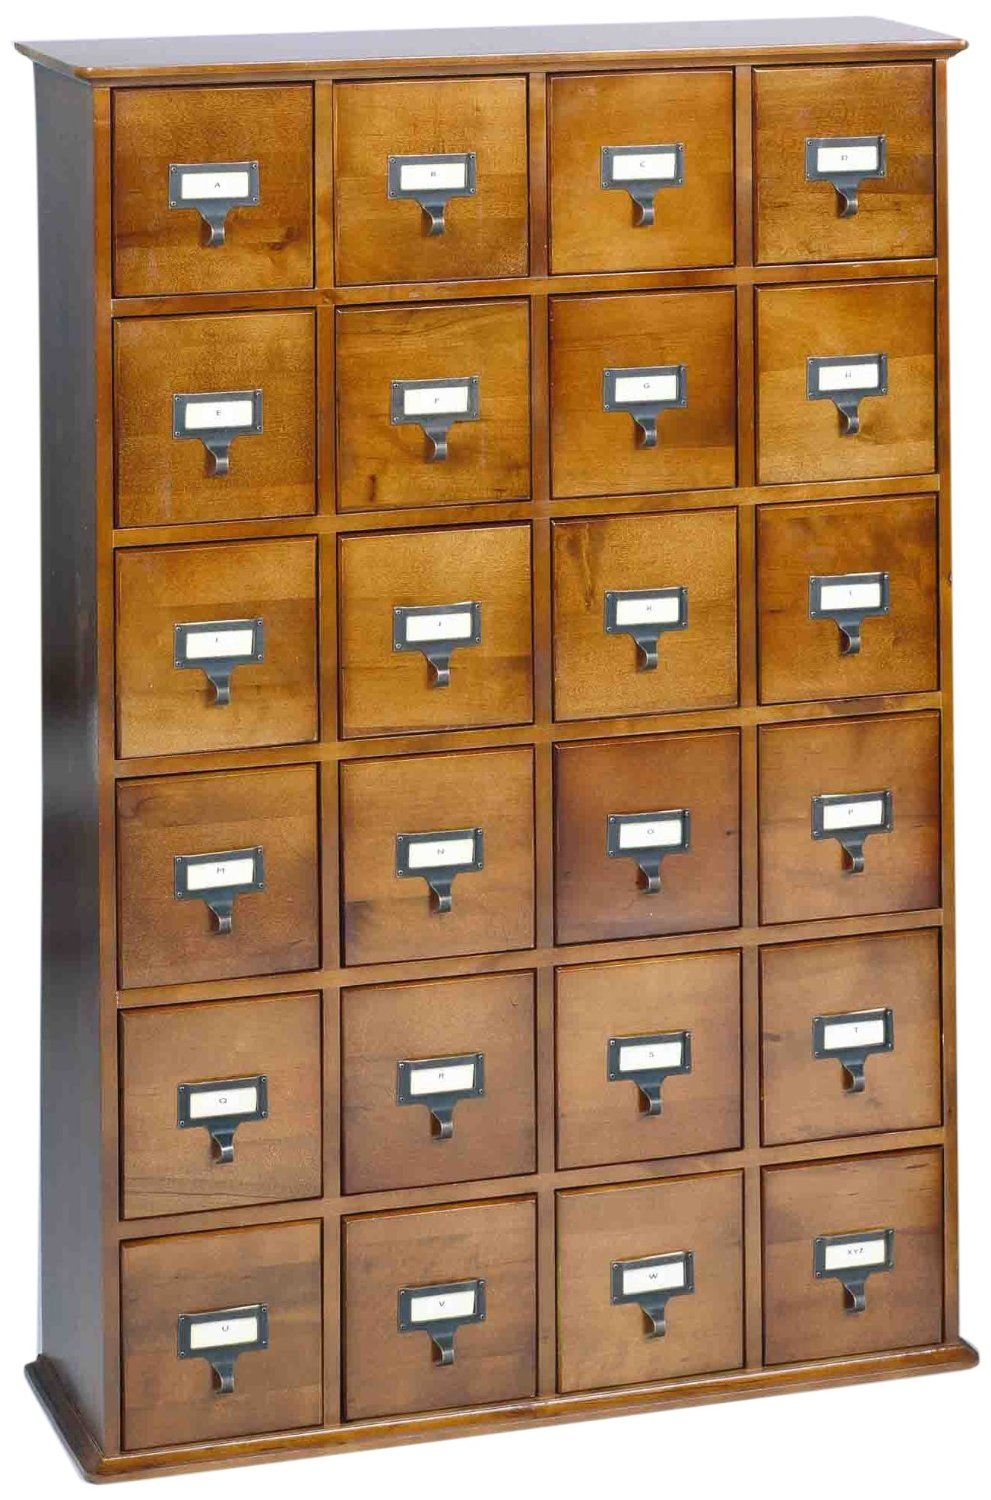 Attractive Handcrafted With Solid Wood, The Walnut Finish Leslie Dame Library Card  File Multimedia Storage Cabinet Is A Completely Functional Media Storage  Cabinet ...